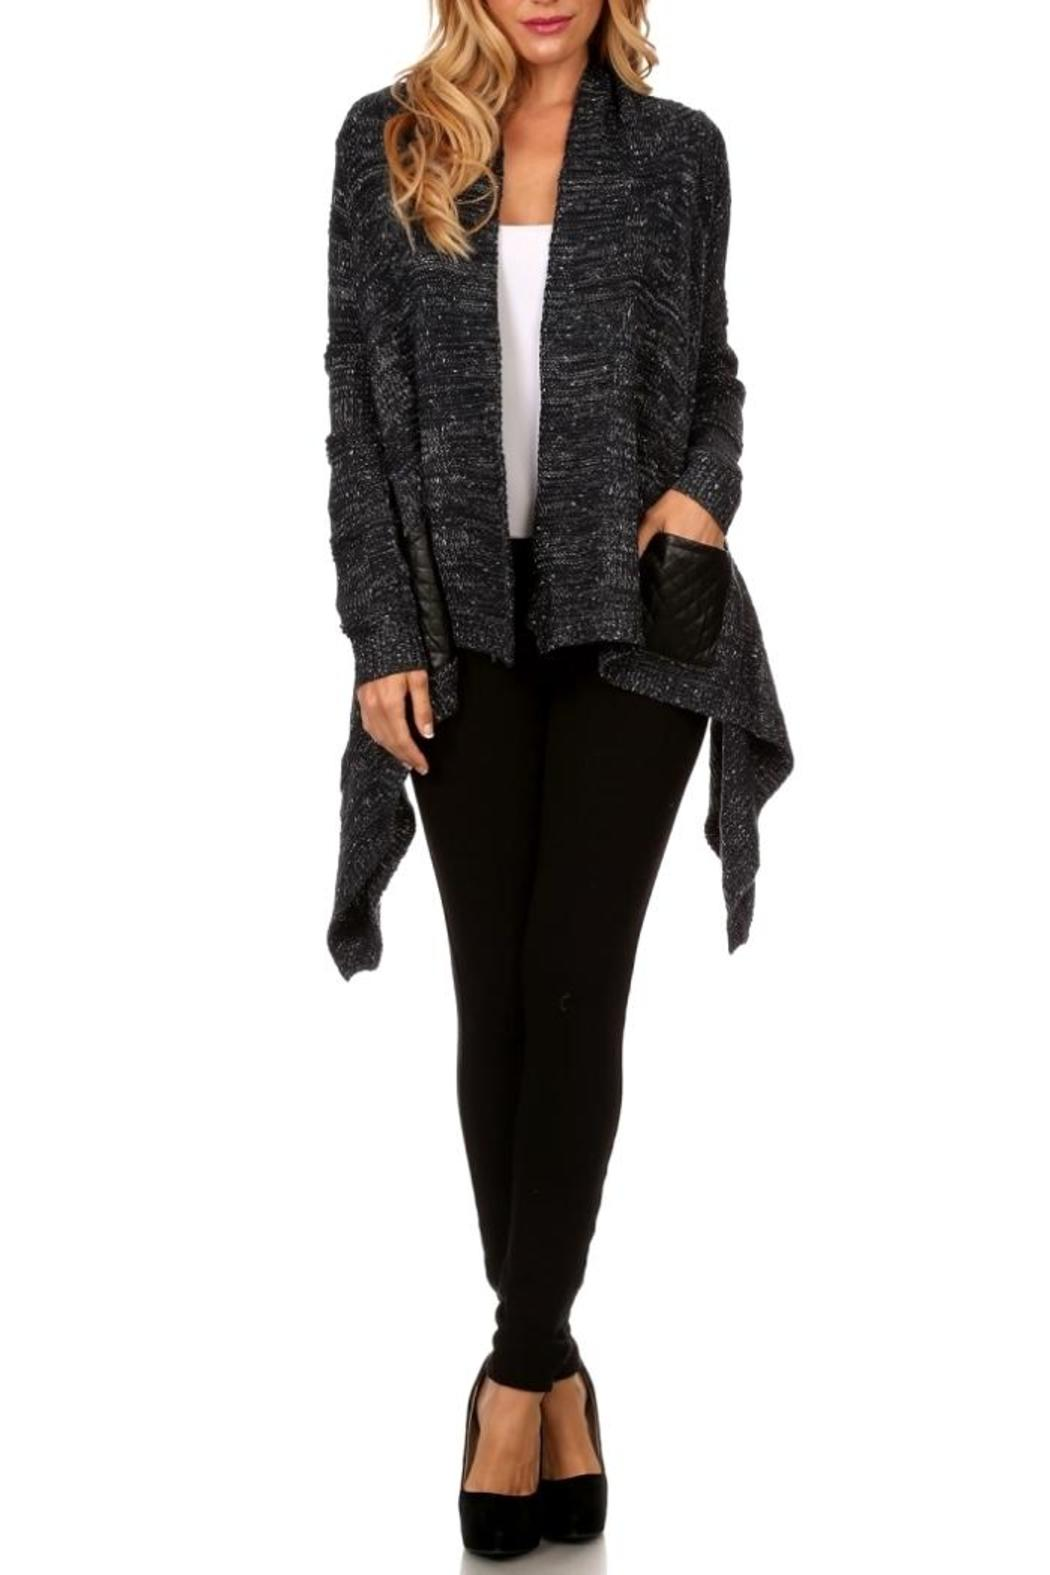 514ebb3681 Janet Paris Open Front Cardigan from San Francisco by Marvy Fashion ...